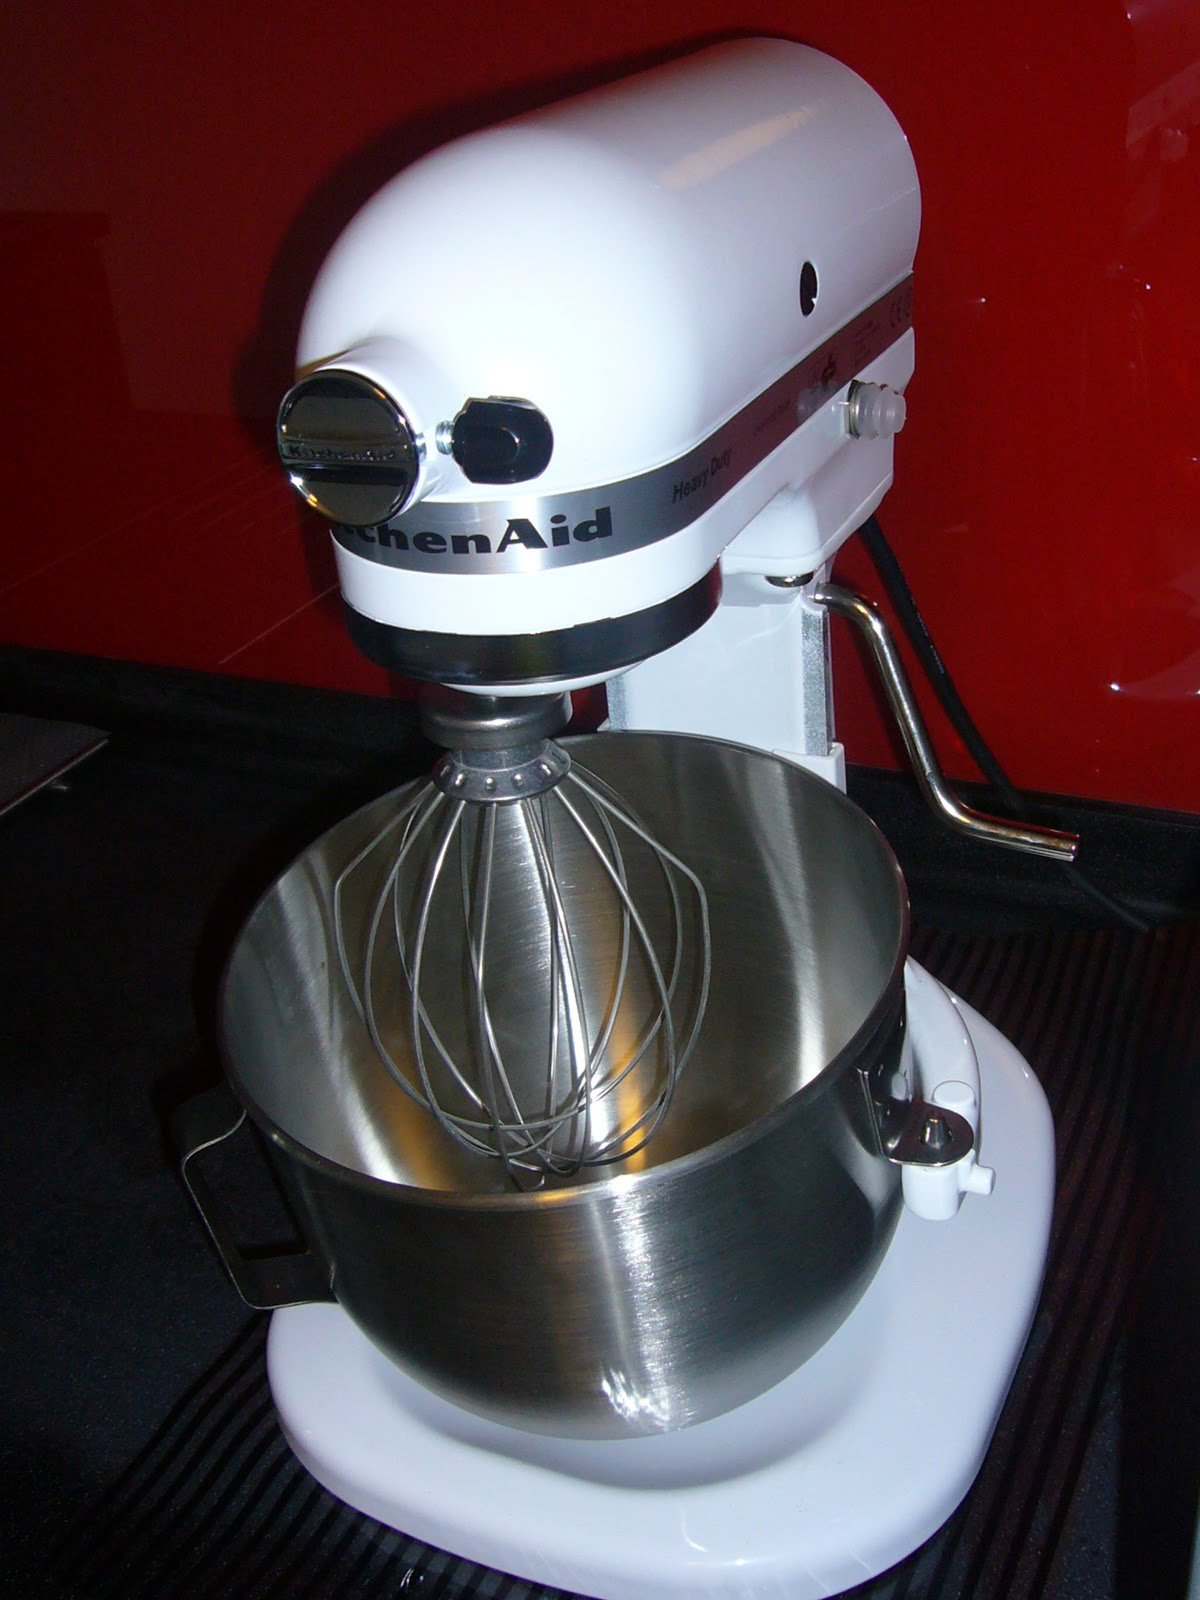 Blissndreams Kitchenaid Heavy Duty Mixer 5kpm50